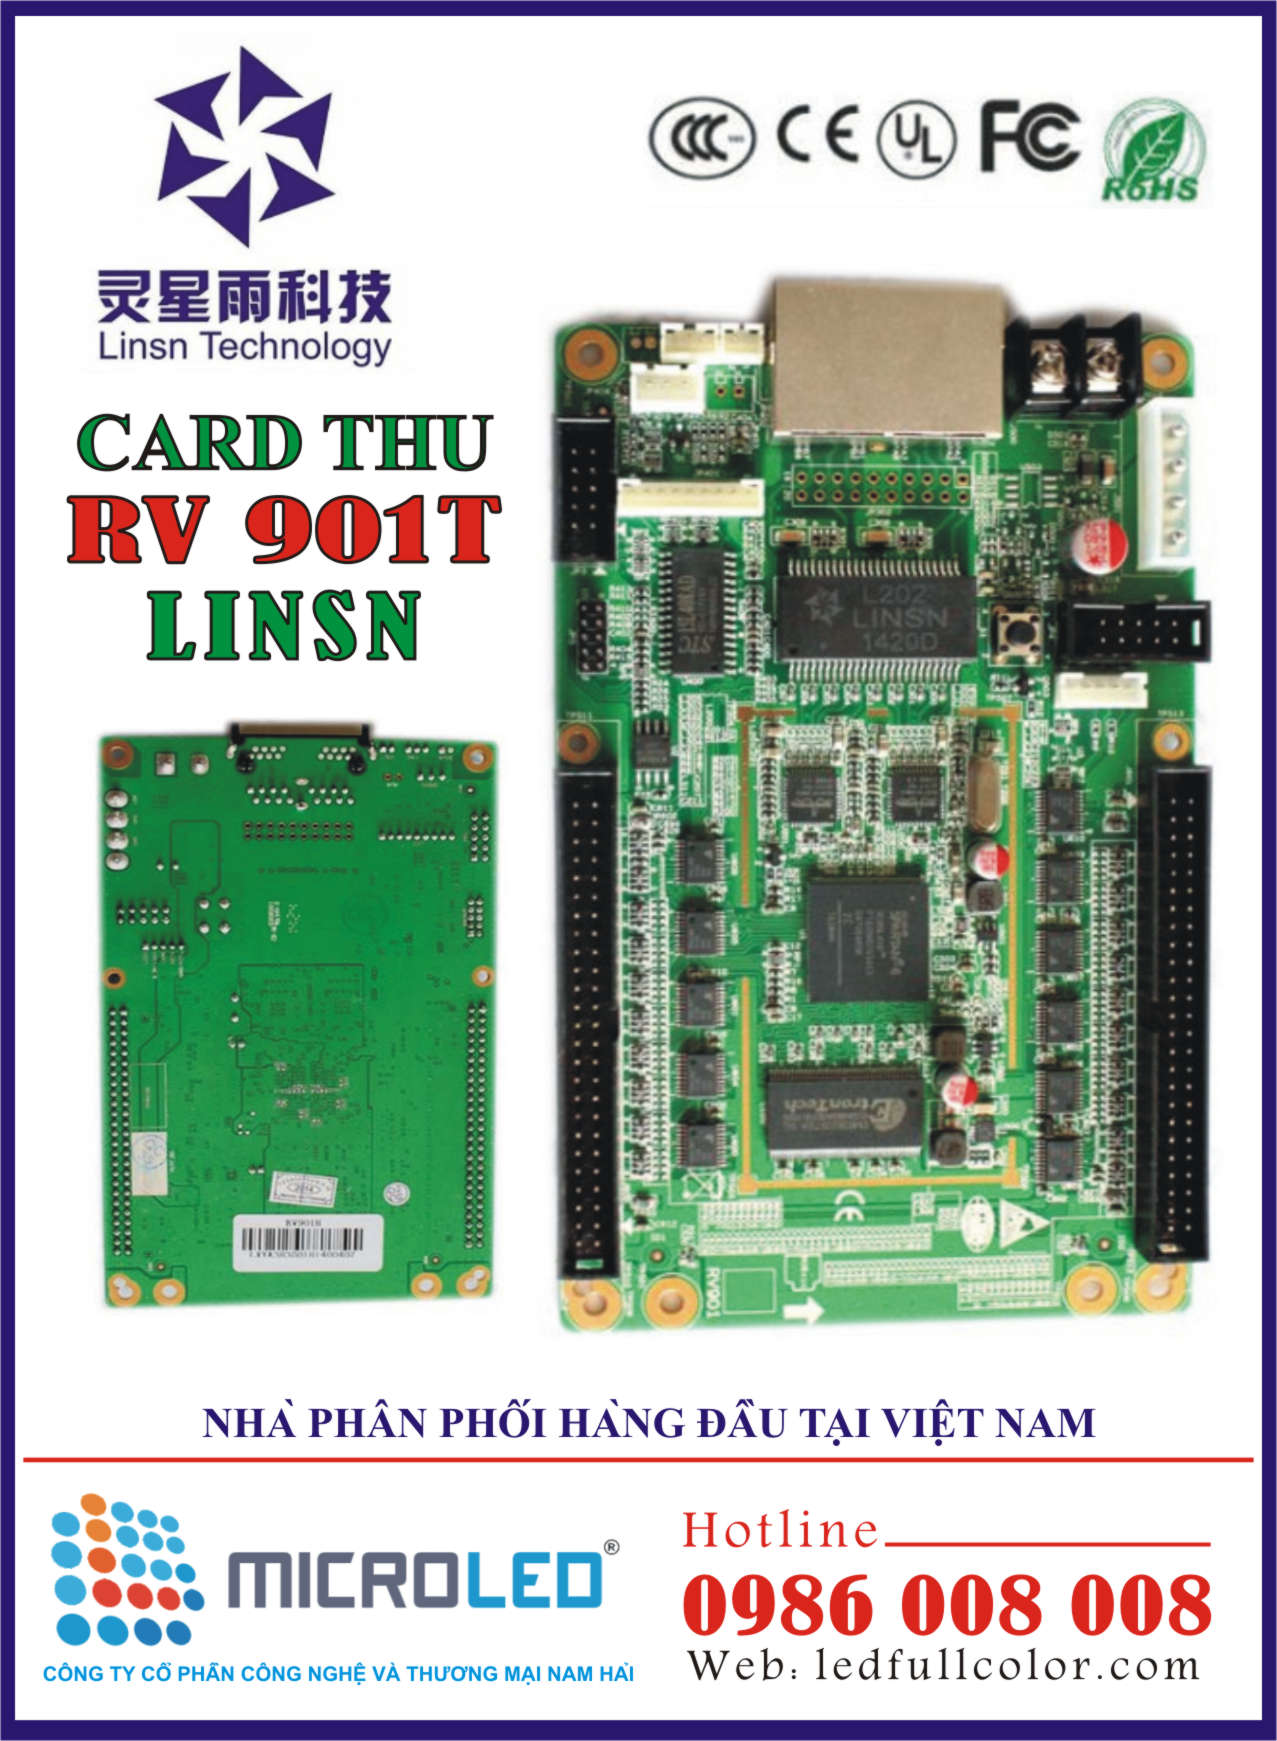 Card thu Linsn RV 901T